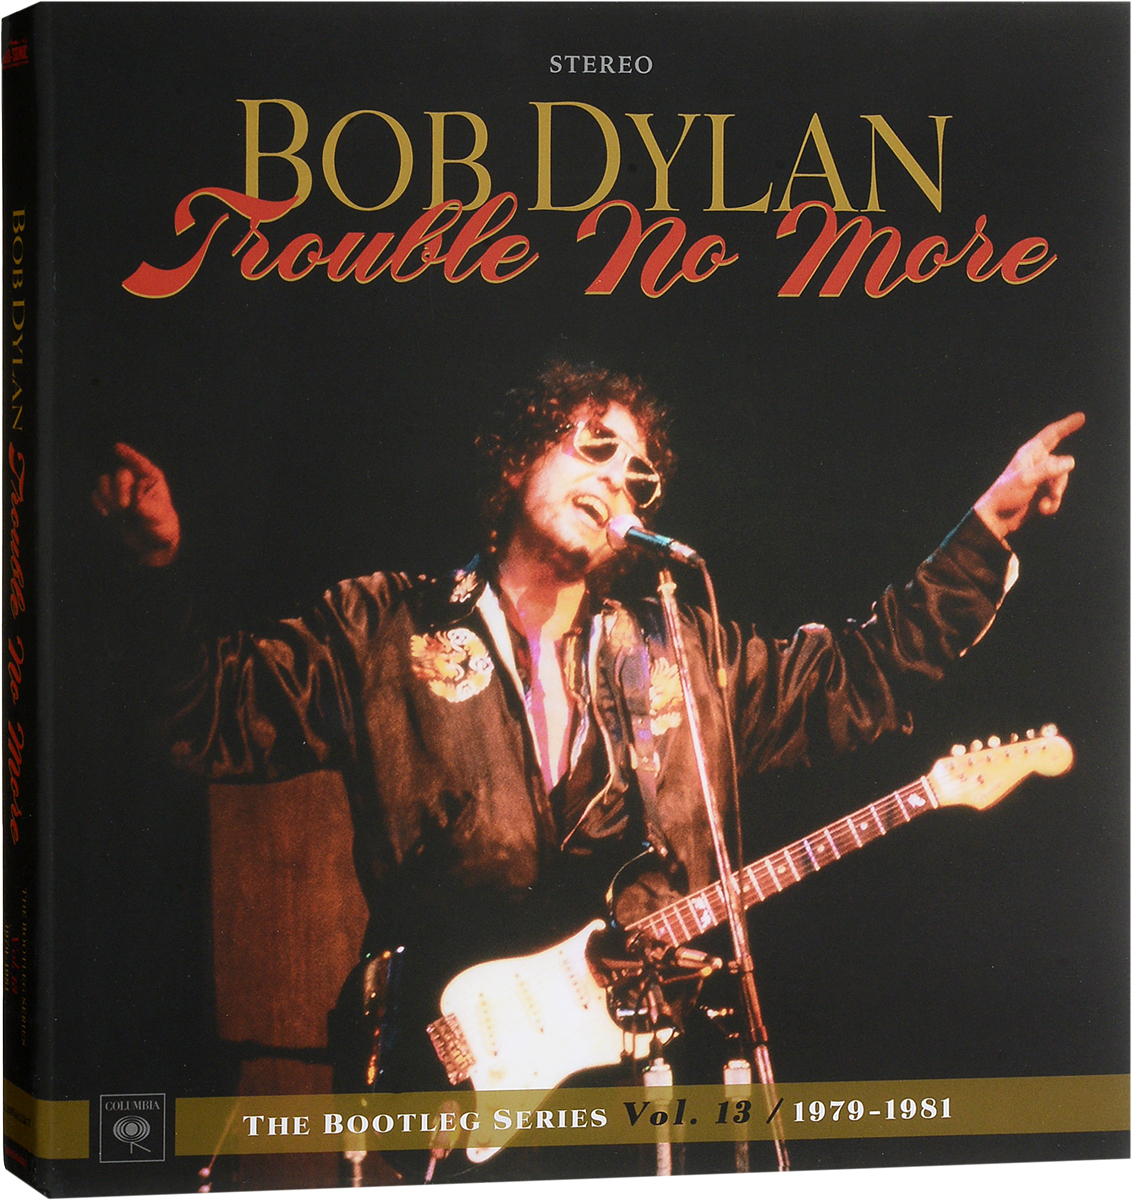 Боб Дилан Bob Dylan. Trouble No More: The Bootleg Series Vol. 13 / 1979-1981 (4 LP + 2 CD) cd bob dylan the bootleg series volumes 1 3 rare unreleased 1961 1991